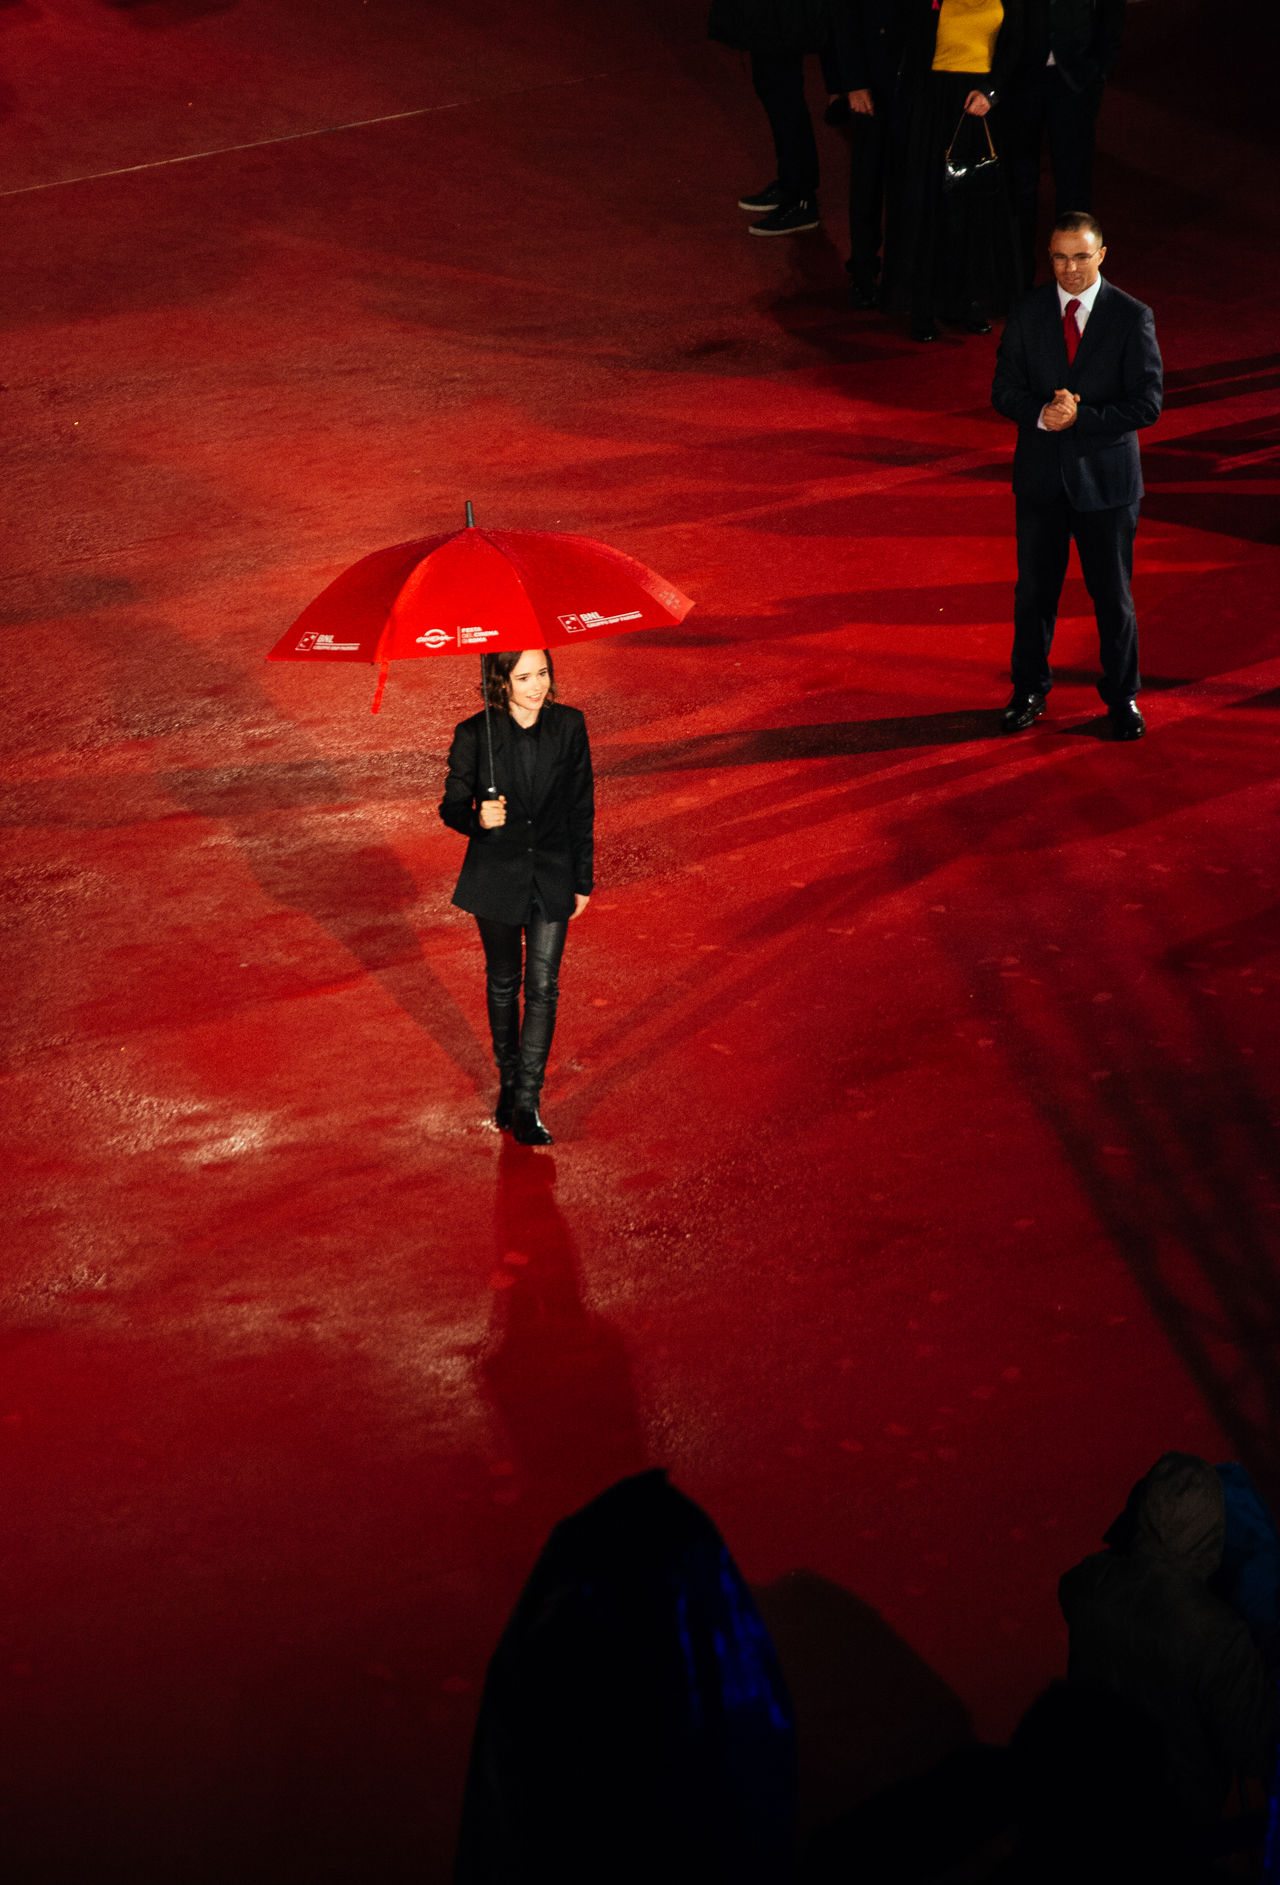 Ellen Page Actress Cinema Ellen Page Freeheld Italy On The Red Carpet Prime Red Carpet Red Carpet! Red Carpet. Redcarpet RomaFF10 Rome Rome Film Fest Umbrella Walking The Red Carpet